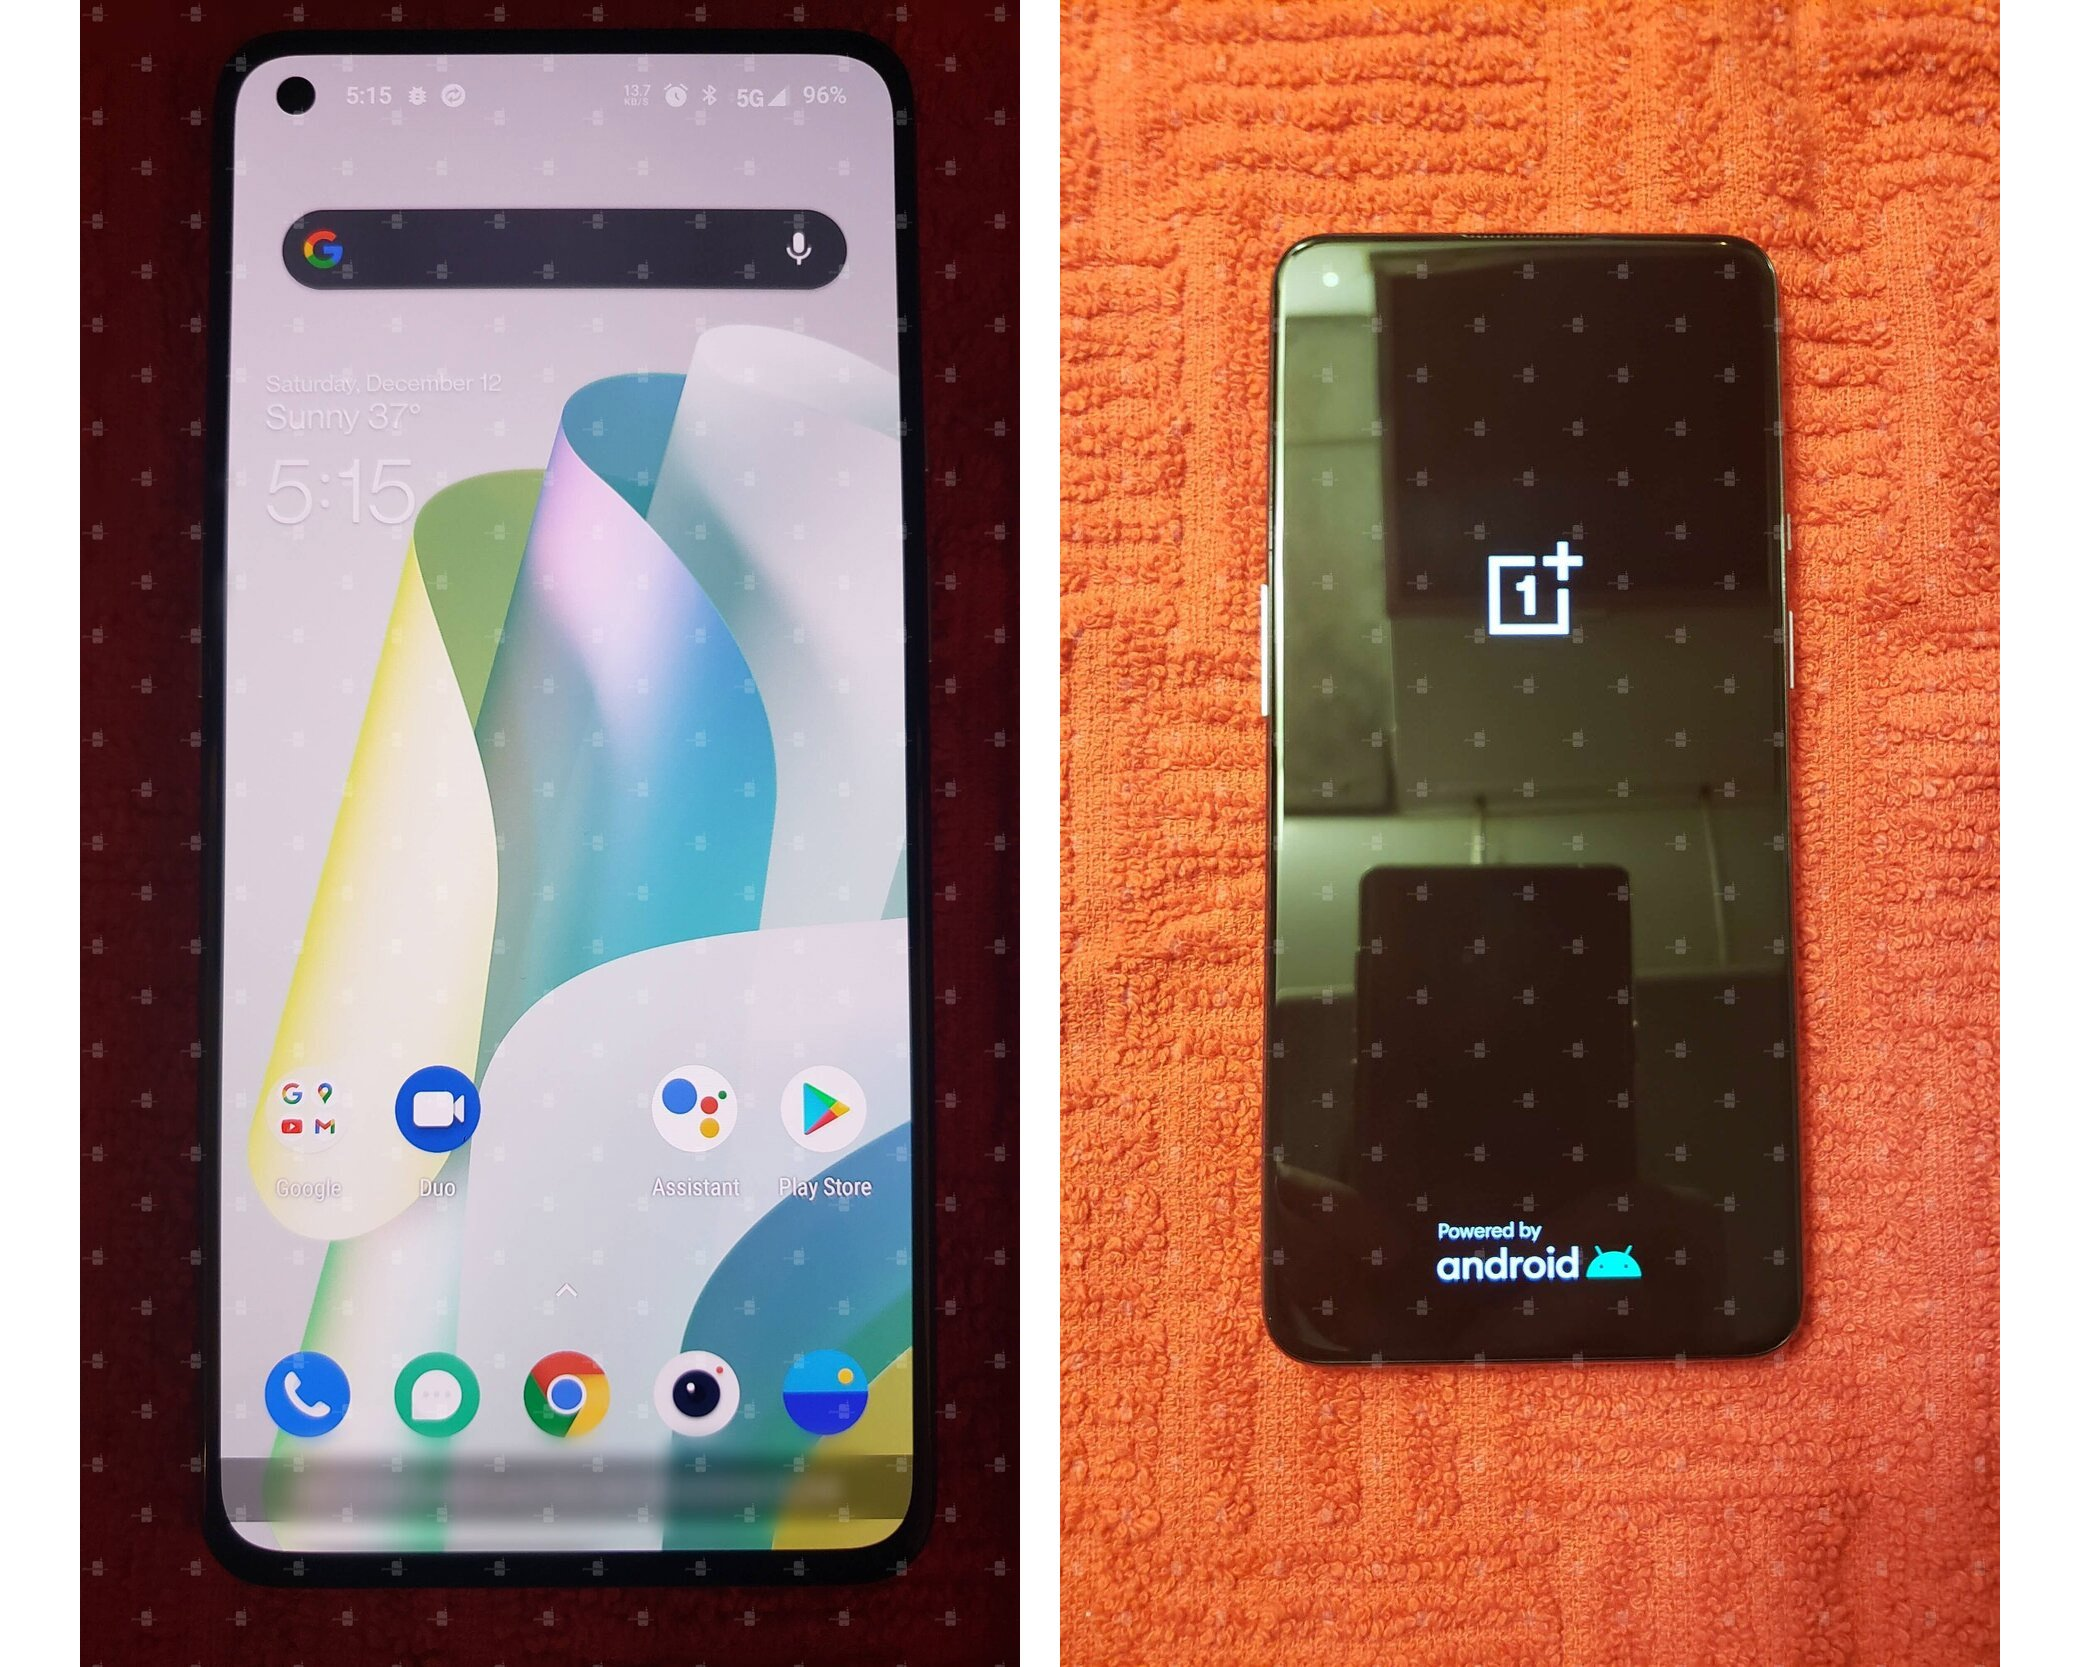 oneplus 9 5g prototype leaked real world front panel display وان پلاس 9 5G